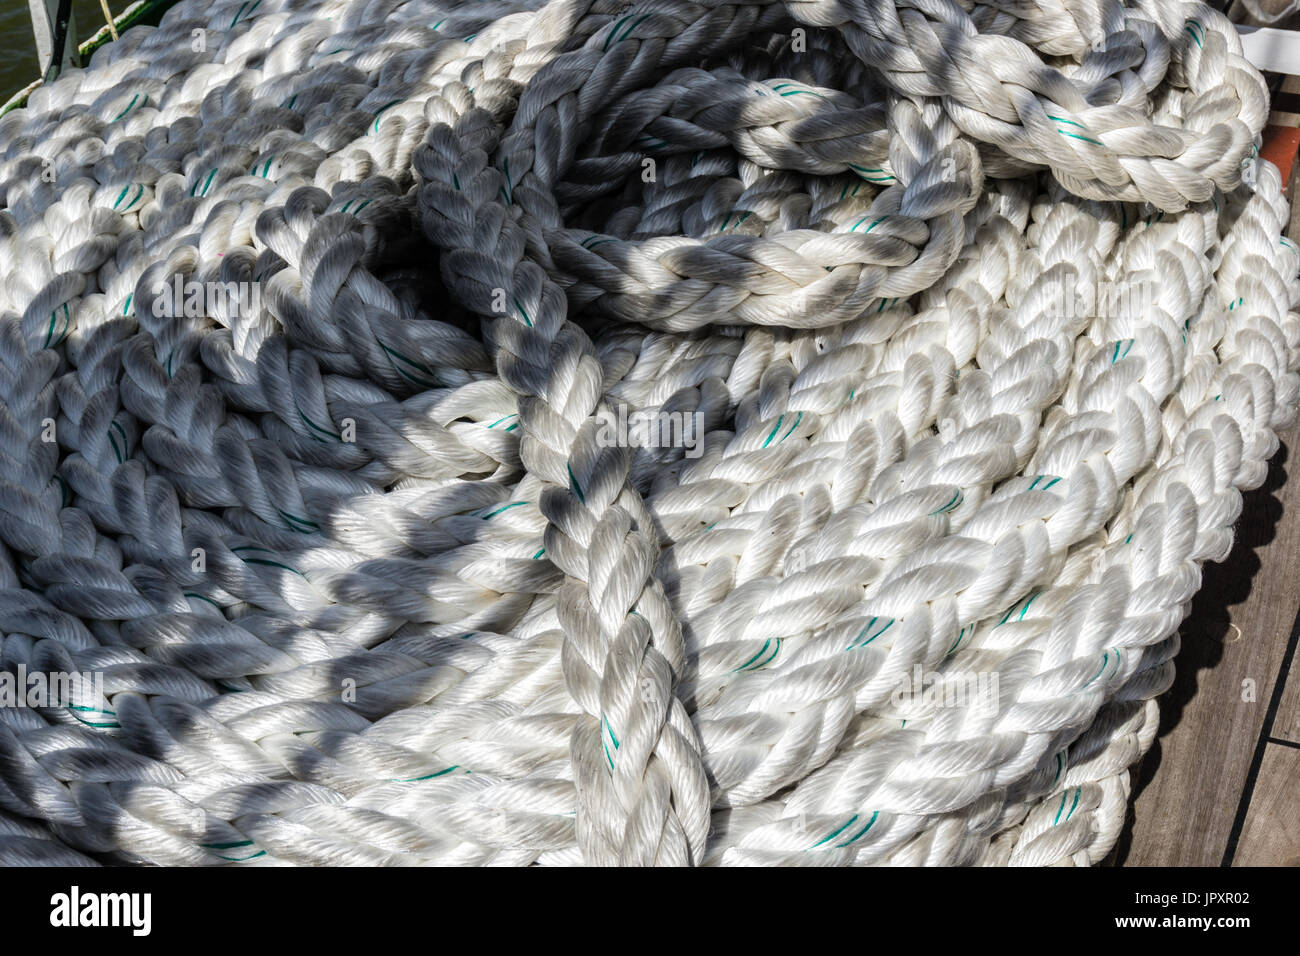 Cable Laying On Ground Art : Cable laying sea stock photos